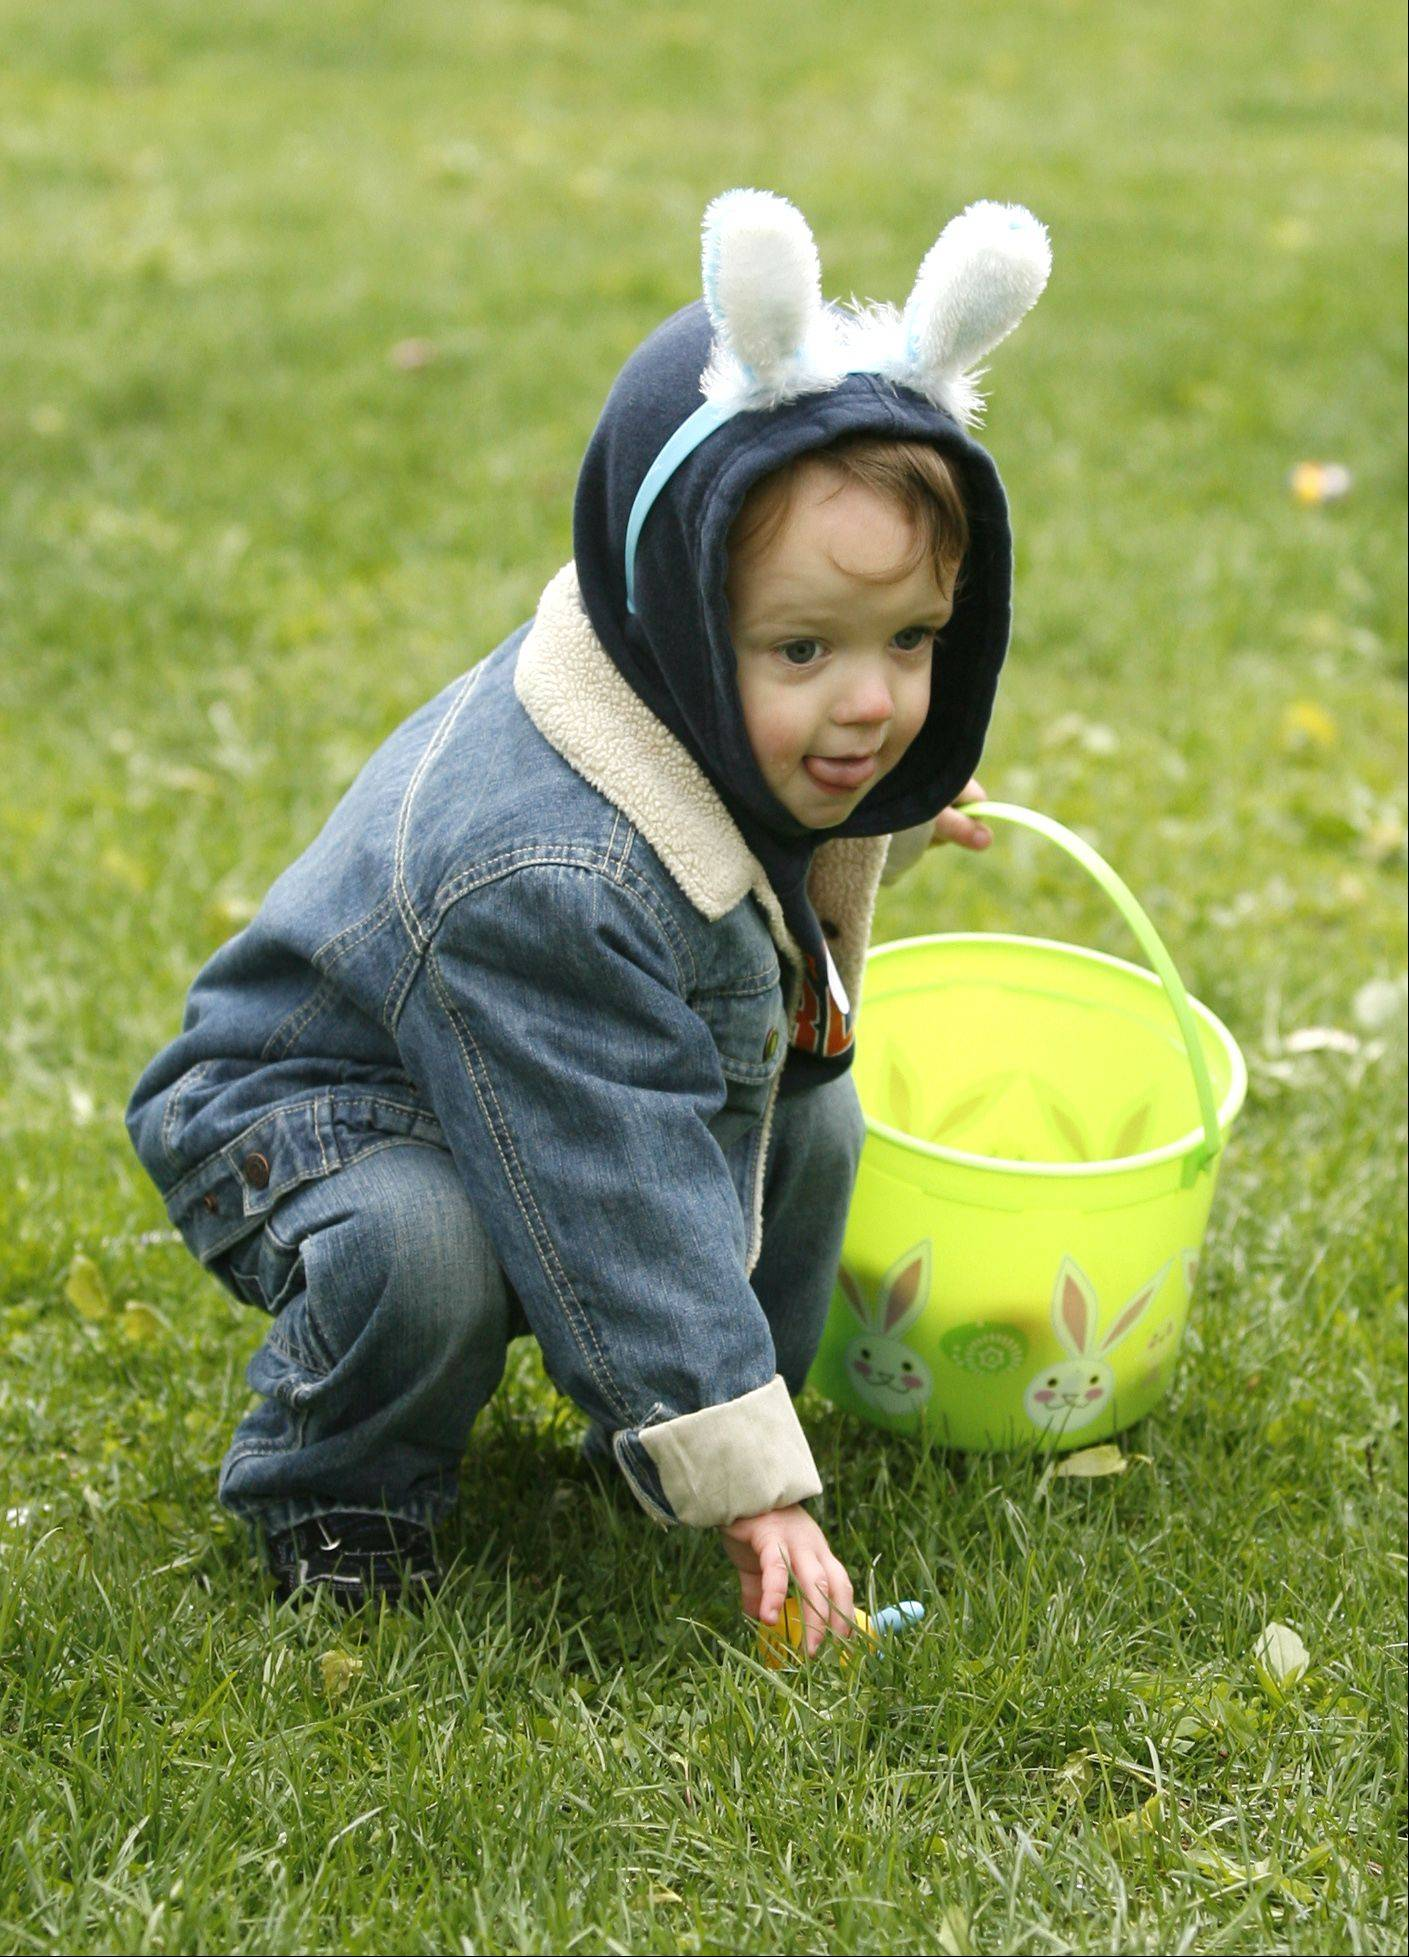 Jacob Kelley, 2, of Winfield eyes his next prize, during the Great Egg Scramble Easter egg hunt at the Cosley Zoo in Wheaton.